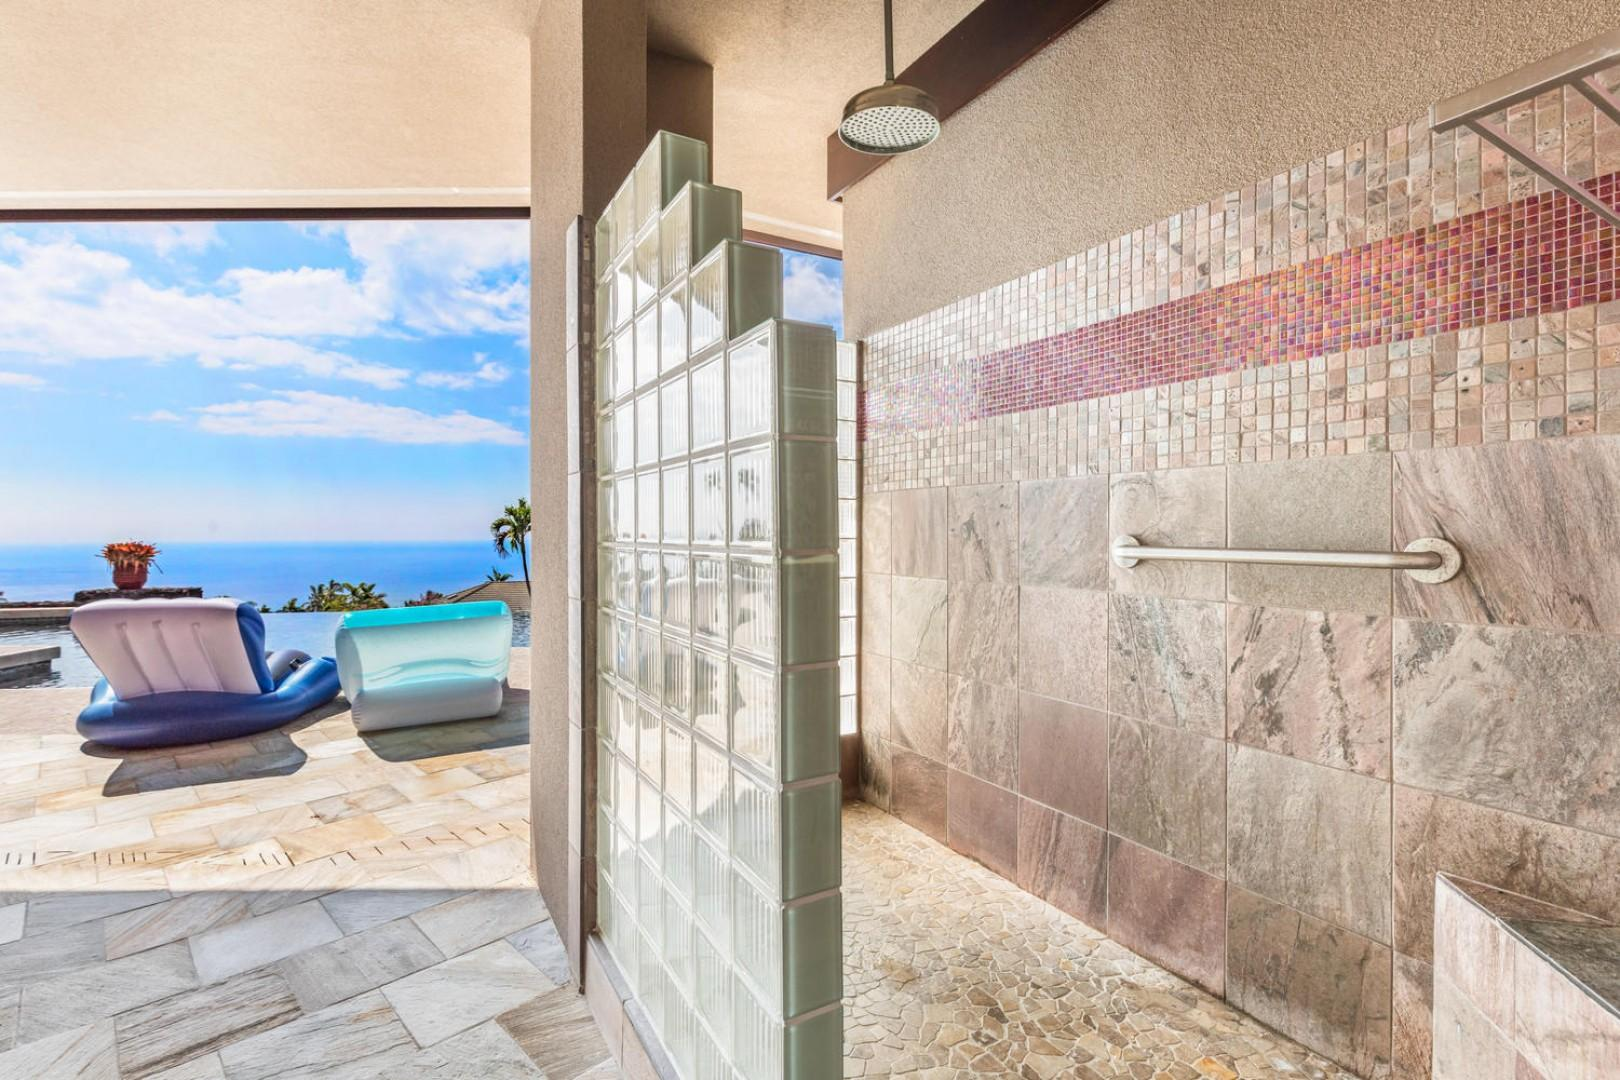 Outdoor shower, pool side!